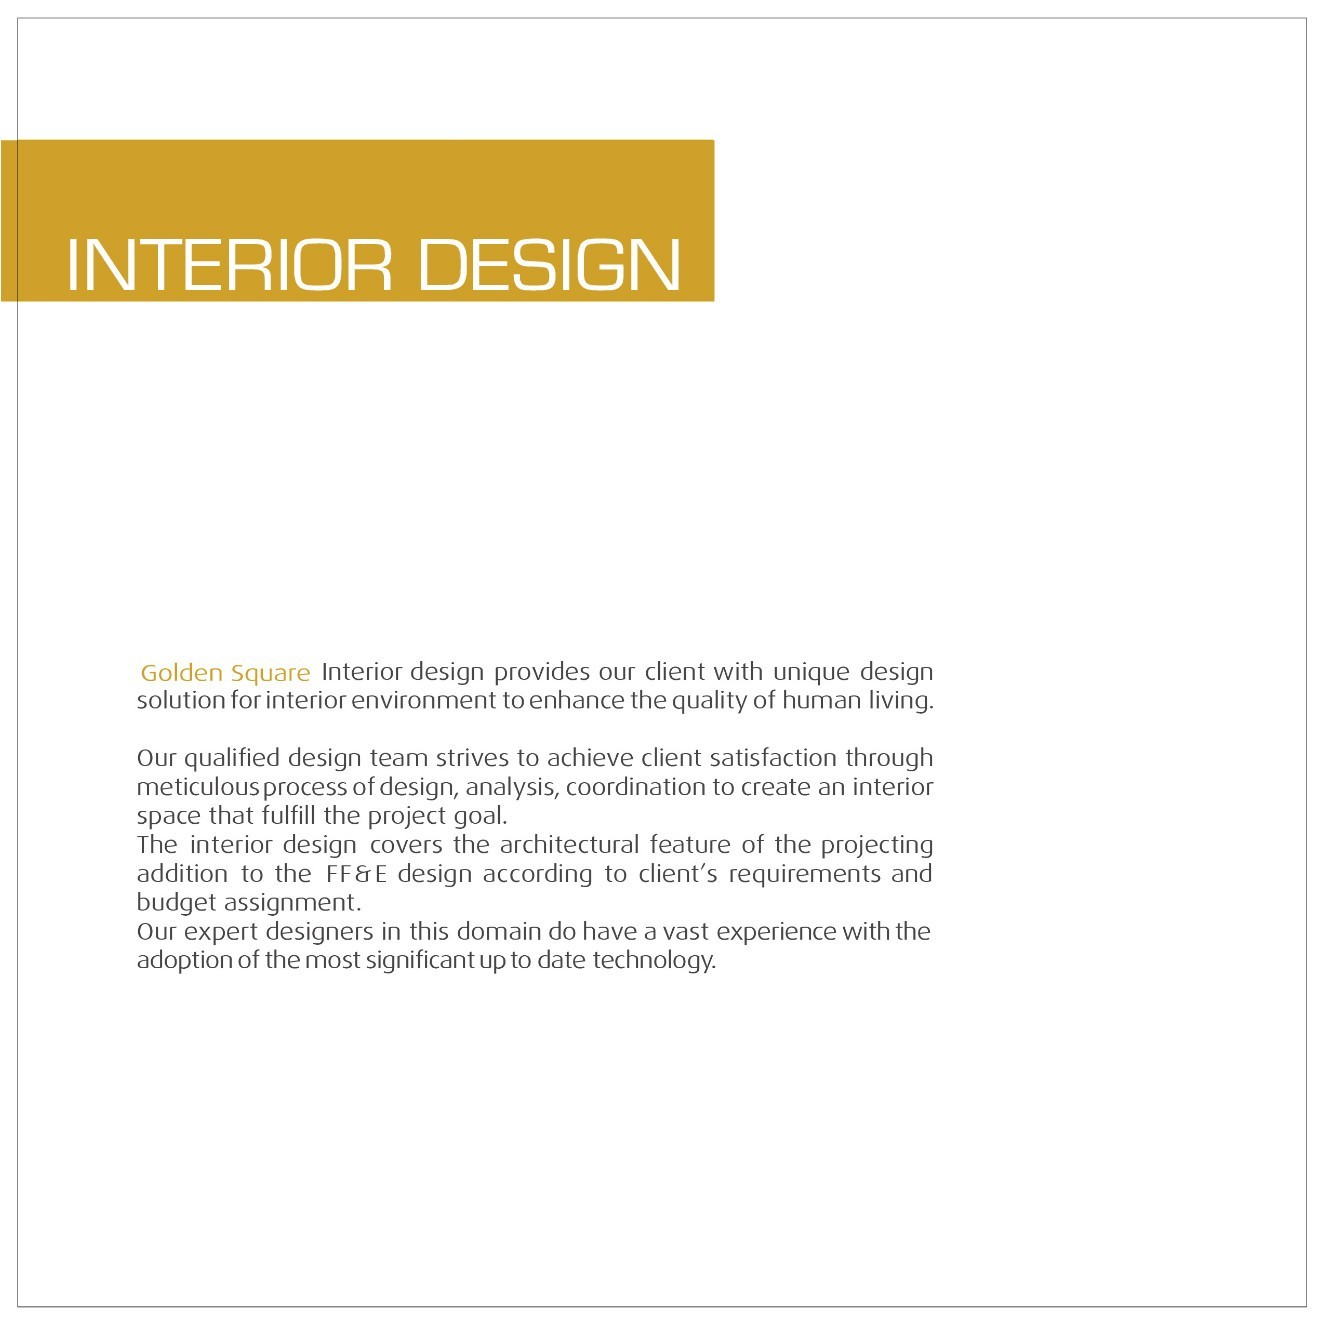 Interior design license whats an interior designer for Interior design license